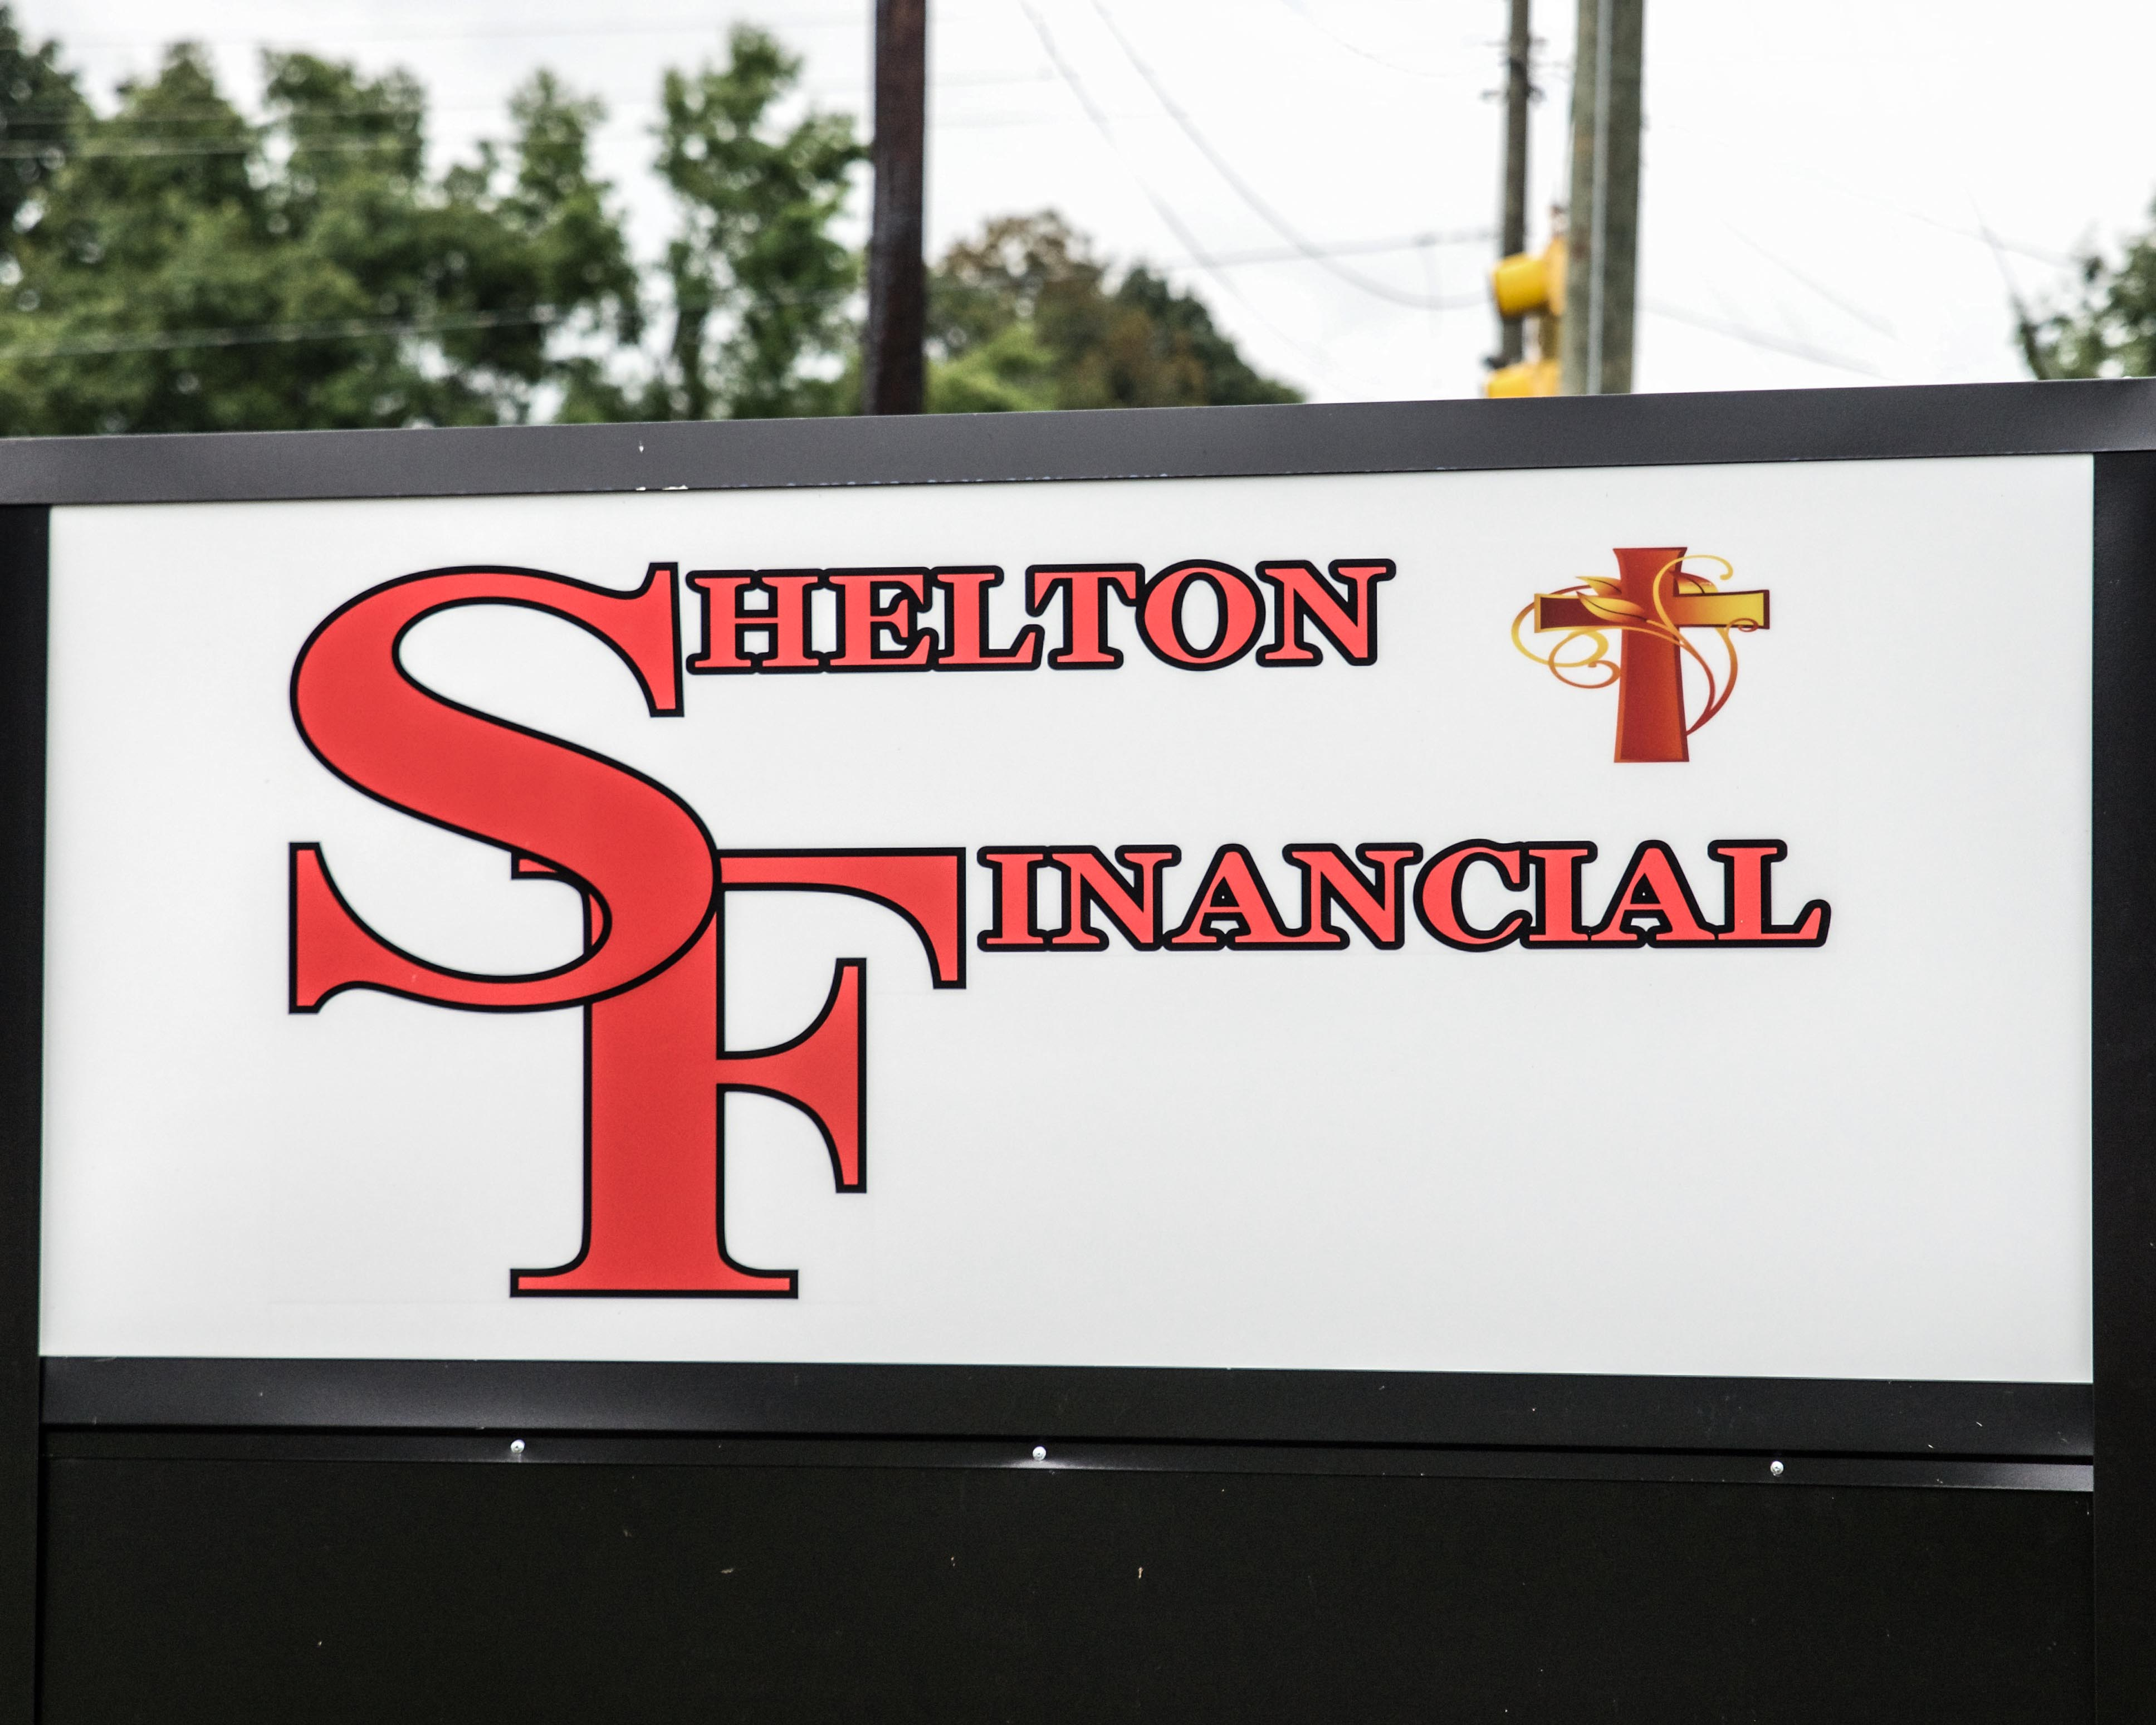 Shelton Financial